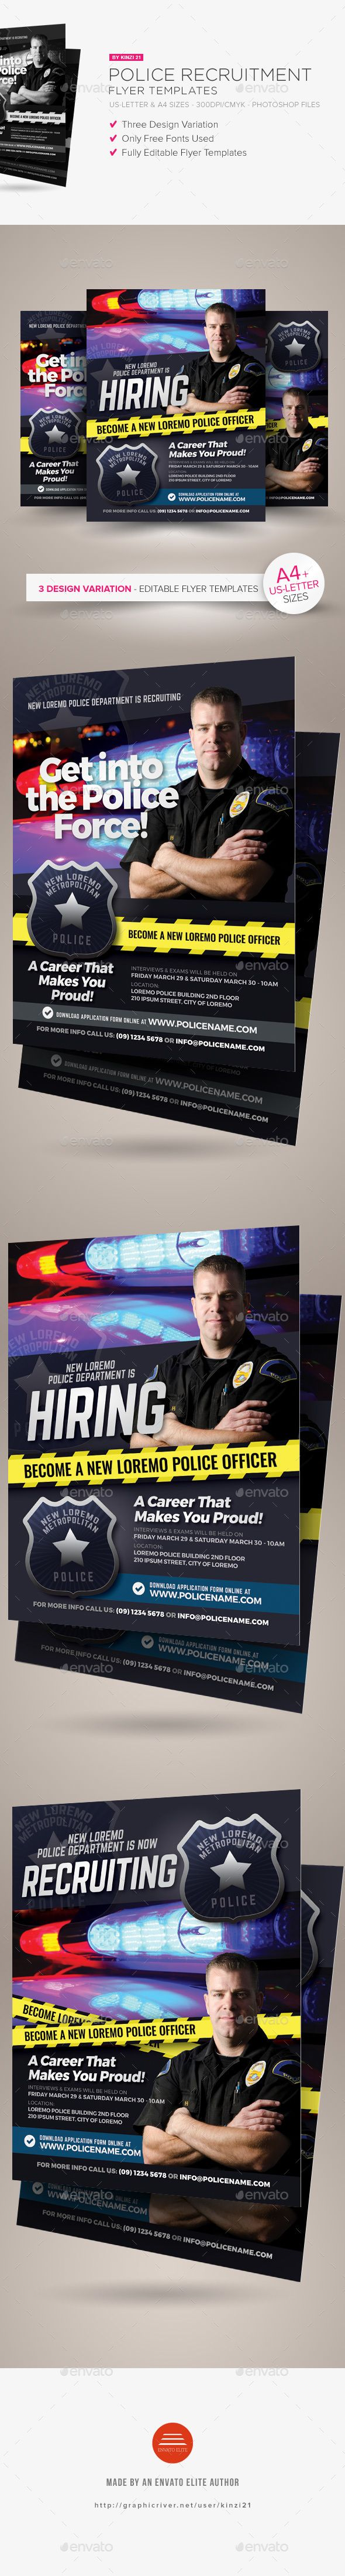 Police Recruitment Flyer Templates — Photoshop PSD #recruitment #city • Available here ➝ https://graphicriver.net/item/police-recruitment-flyer-templates/20607568?ref=pxcr